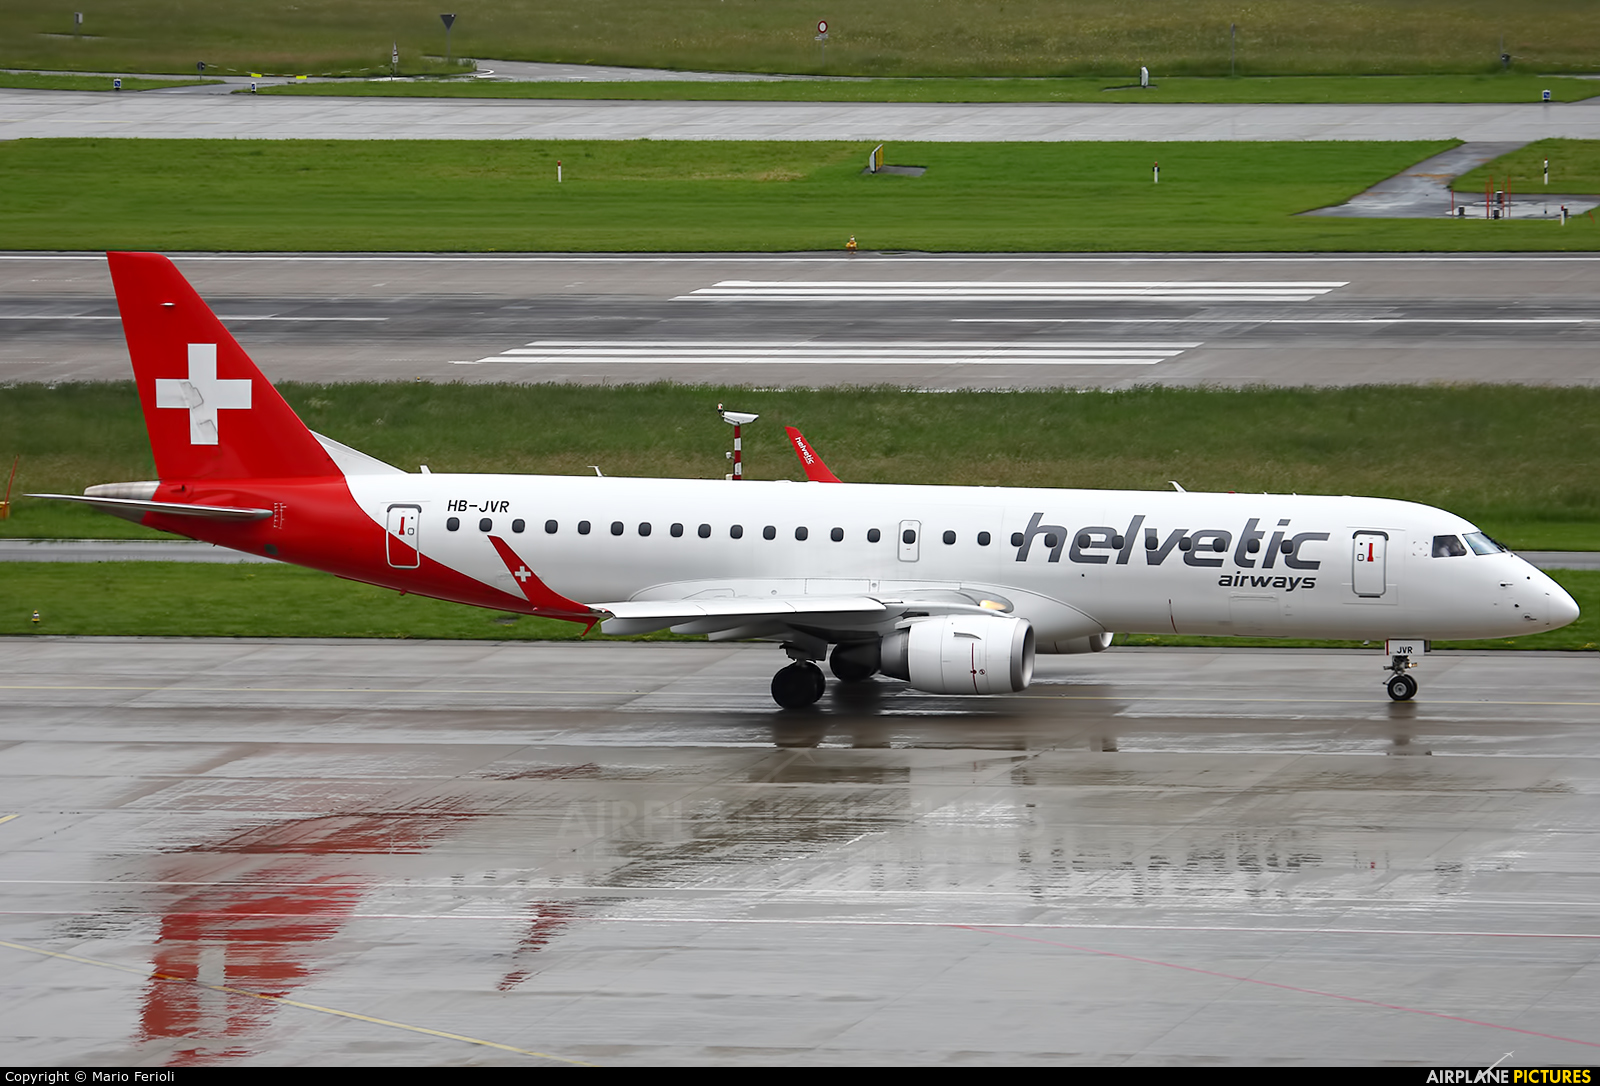 Helvetic Airways HB-JVR aircraft at Zurich